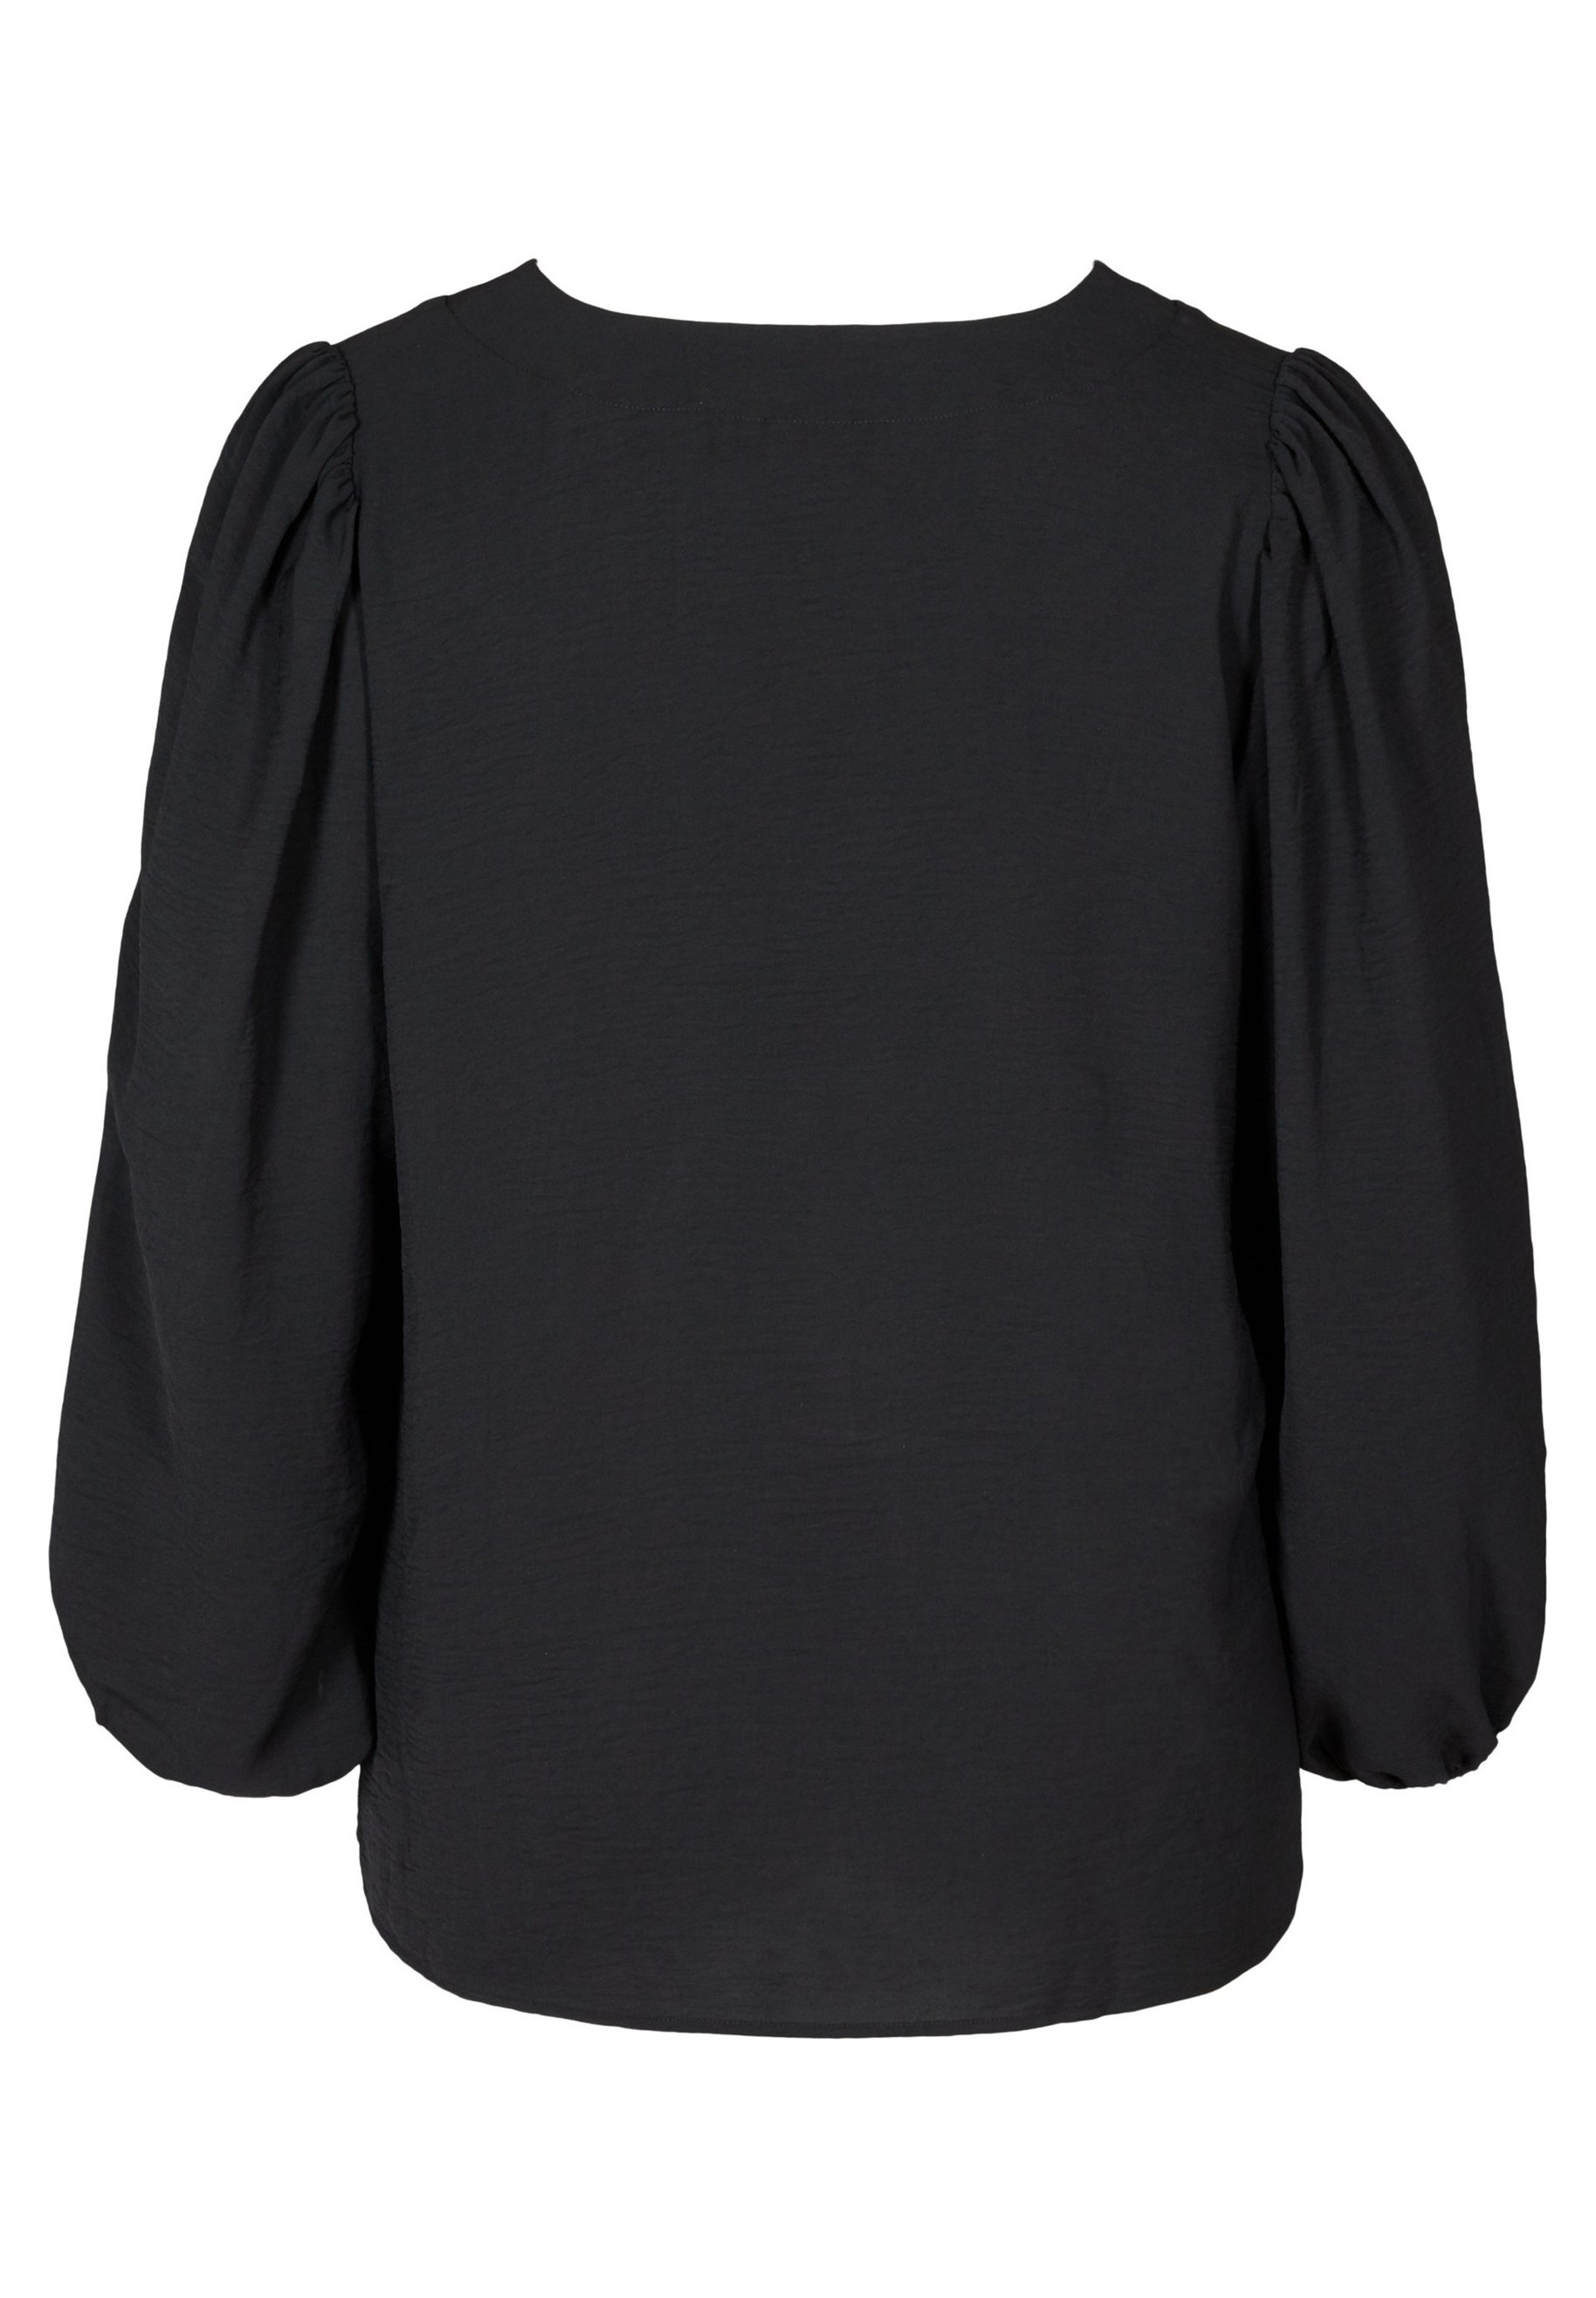 Zizzi WITH PUFF SLEEVES - Blouse - black - Tops & T-shirts Femme OvNoe